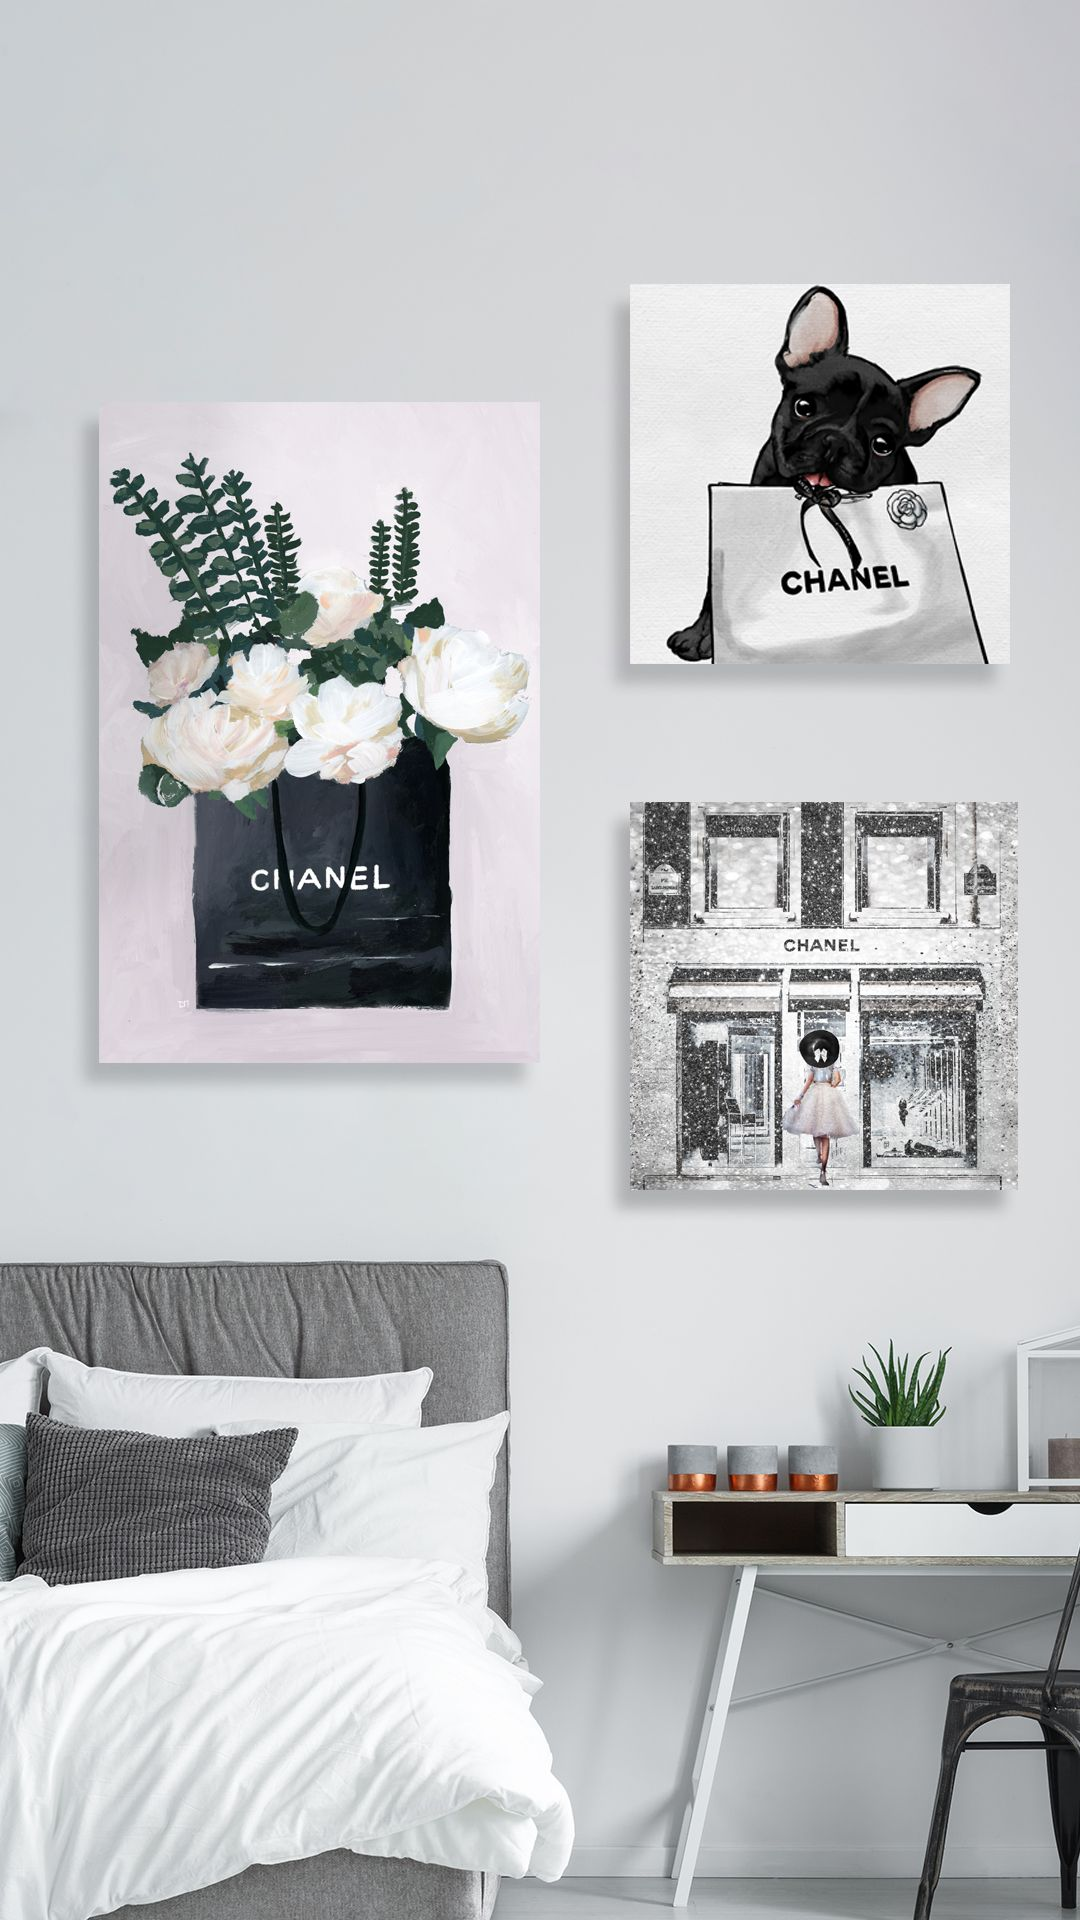 Bedroom With Chanel Inspired Wall Art Cute Room Decor Wall Decor Bedroom Aesthetic Room Decor